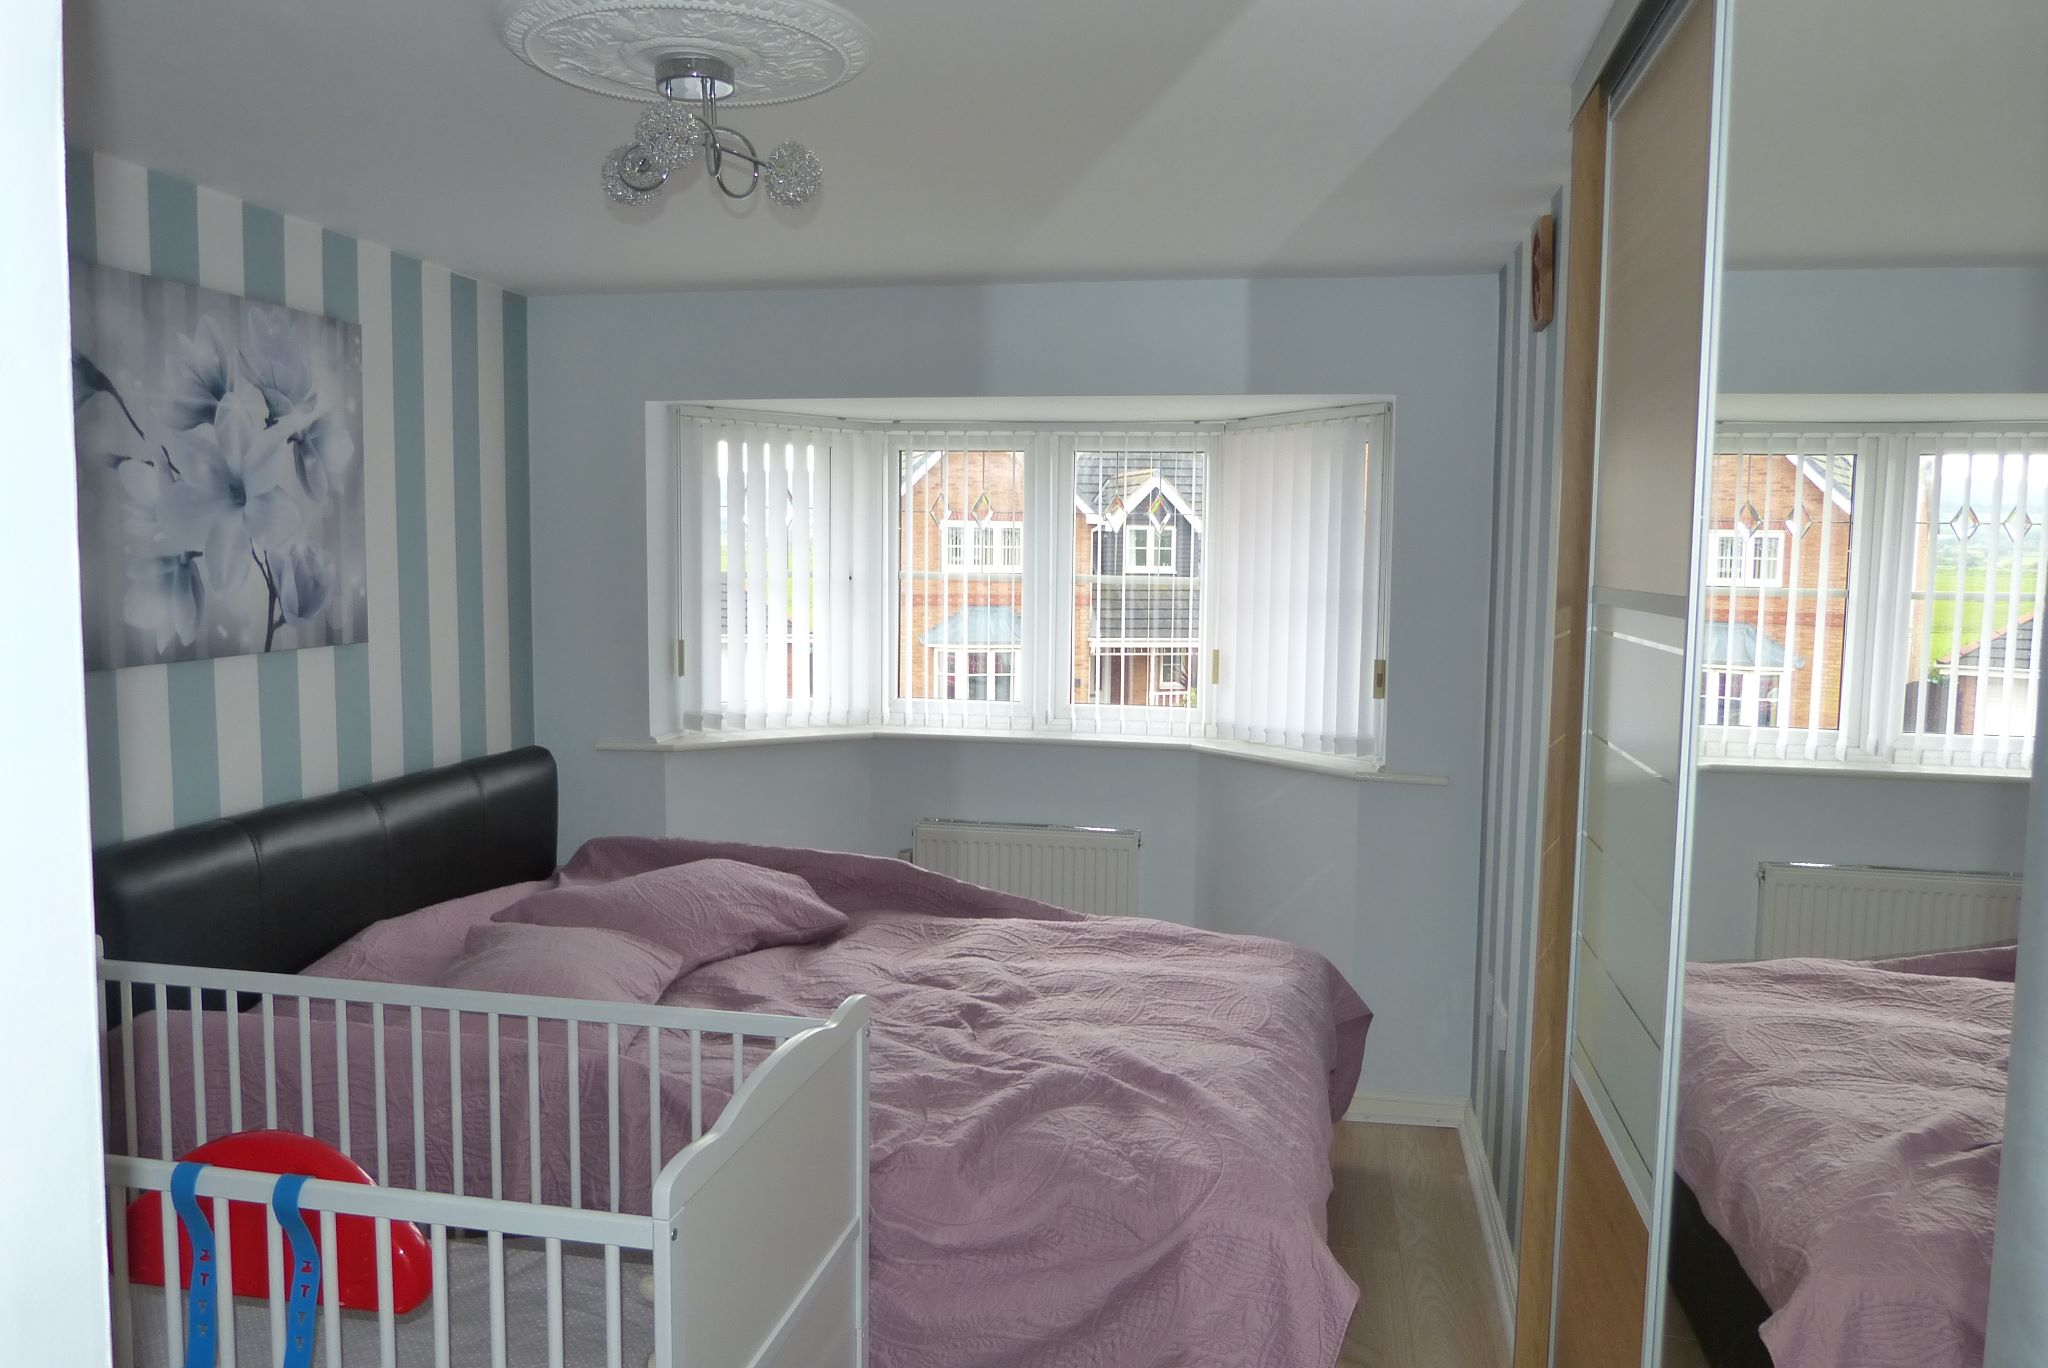 4 bedroom detached house SSTC in Abergele - Photograph 7